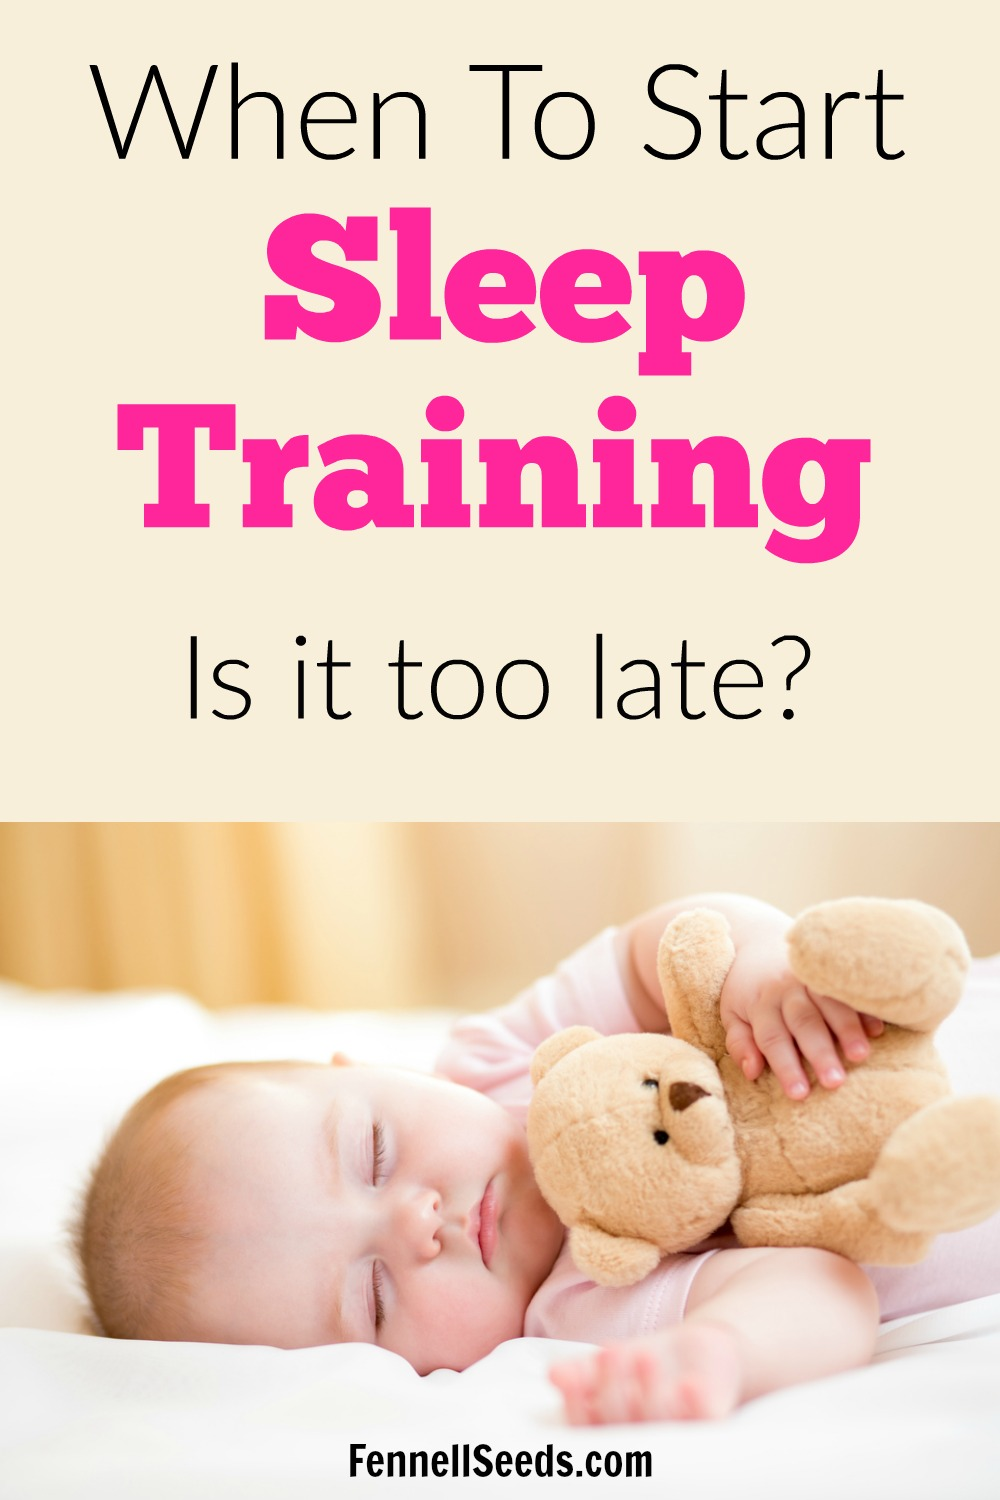 When to start sleep training   when can you start sleep training   when to start sleep training baby   what age to start sleep training   sleep training